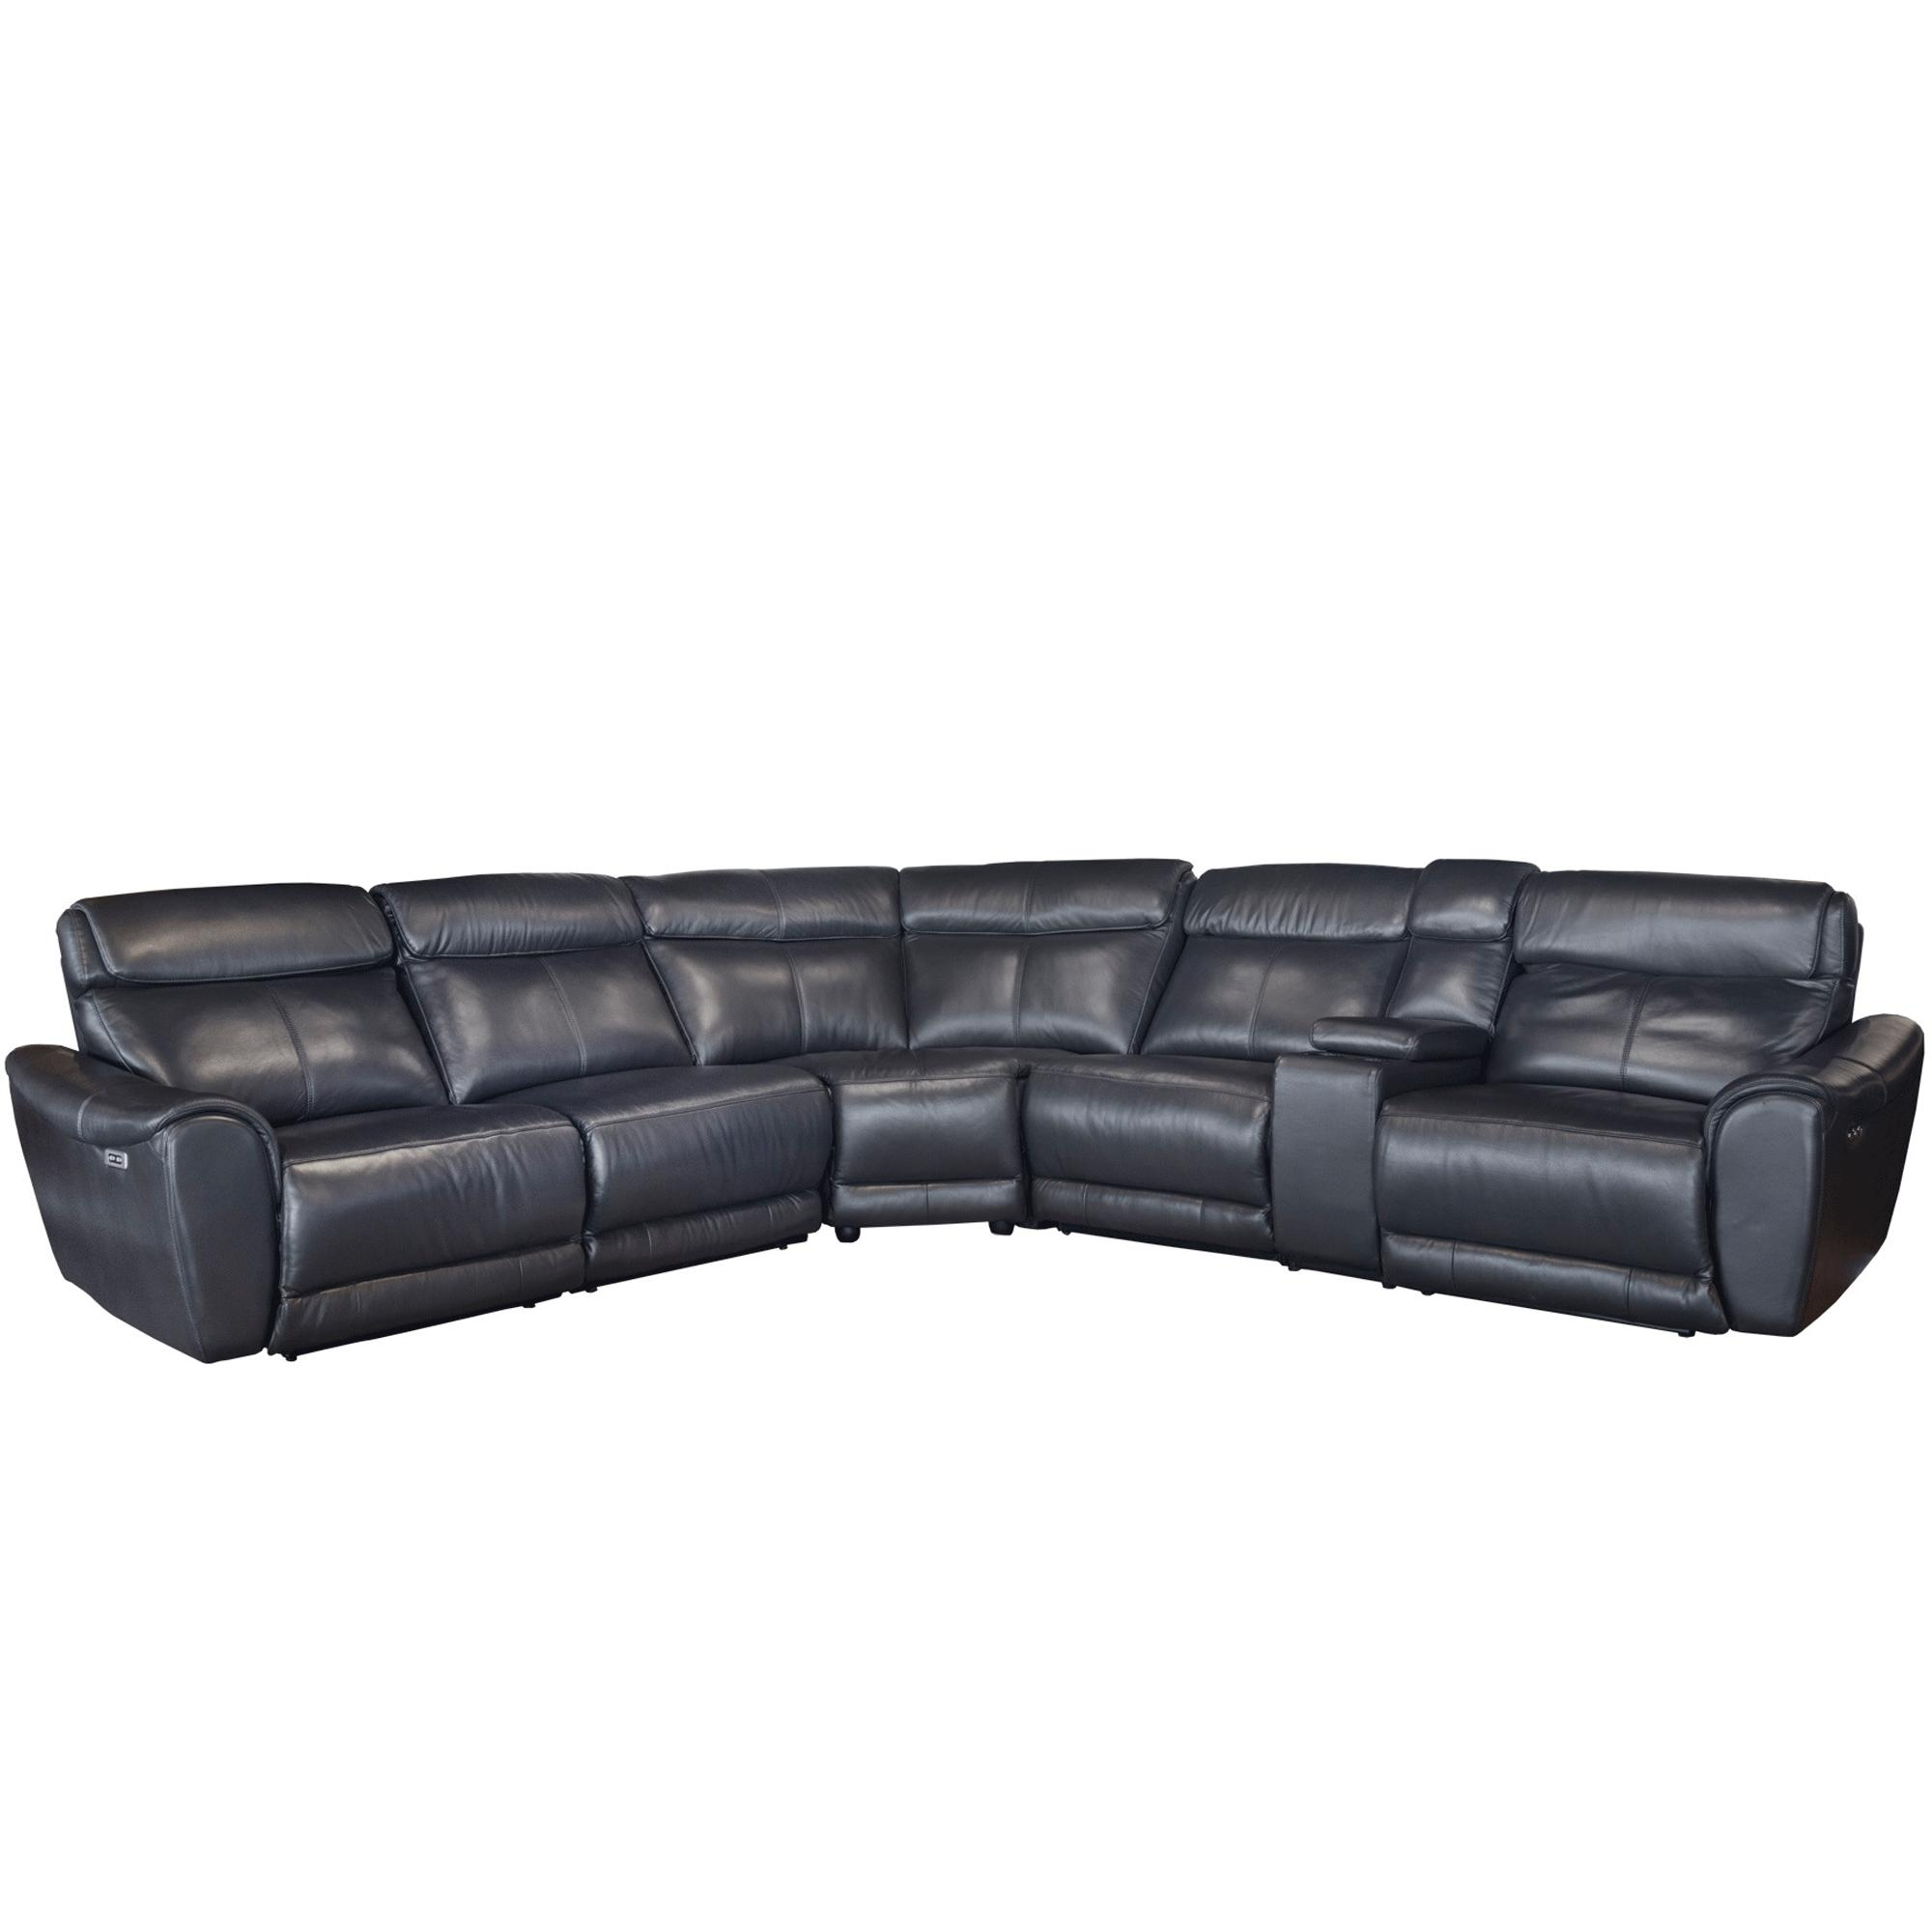 Sectional Sofas | Sectional Couches – Bernie & Phyl's Furniture With Regard To 6 Piece Sectional Sofas Couches (Image 15 of 20)